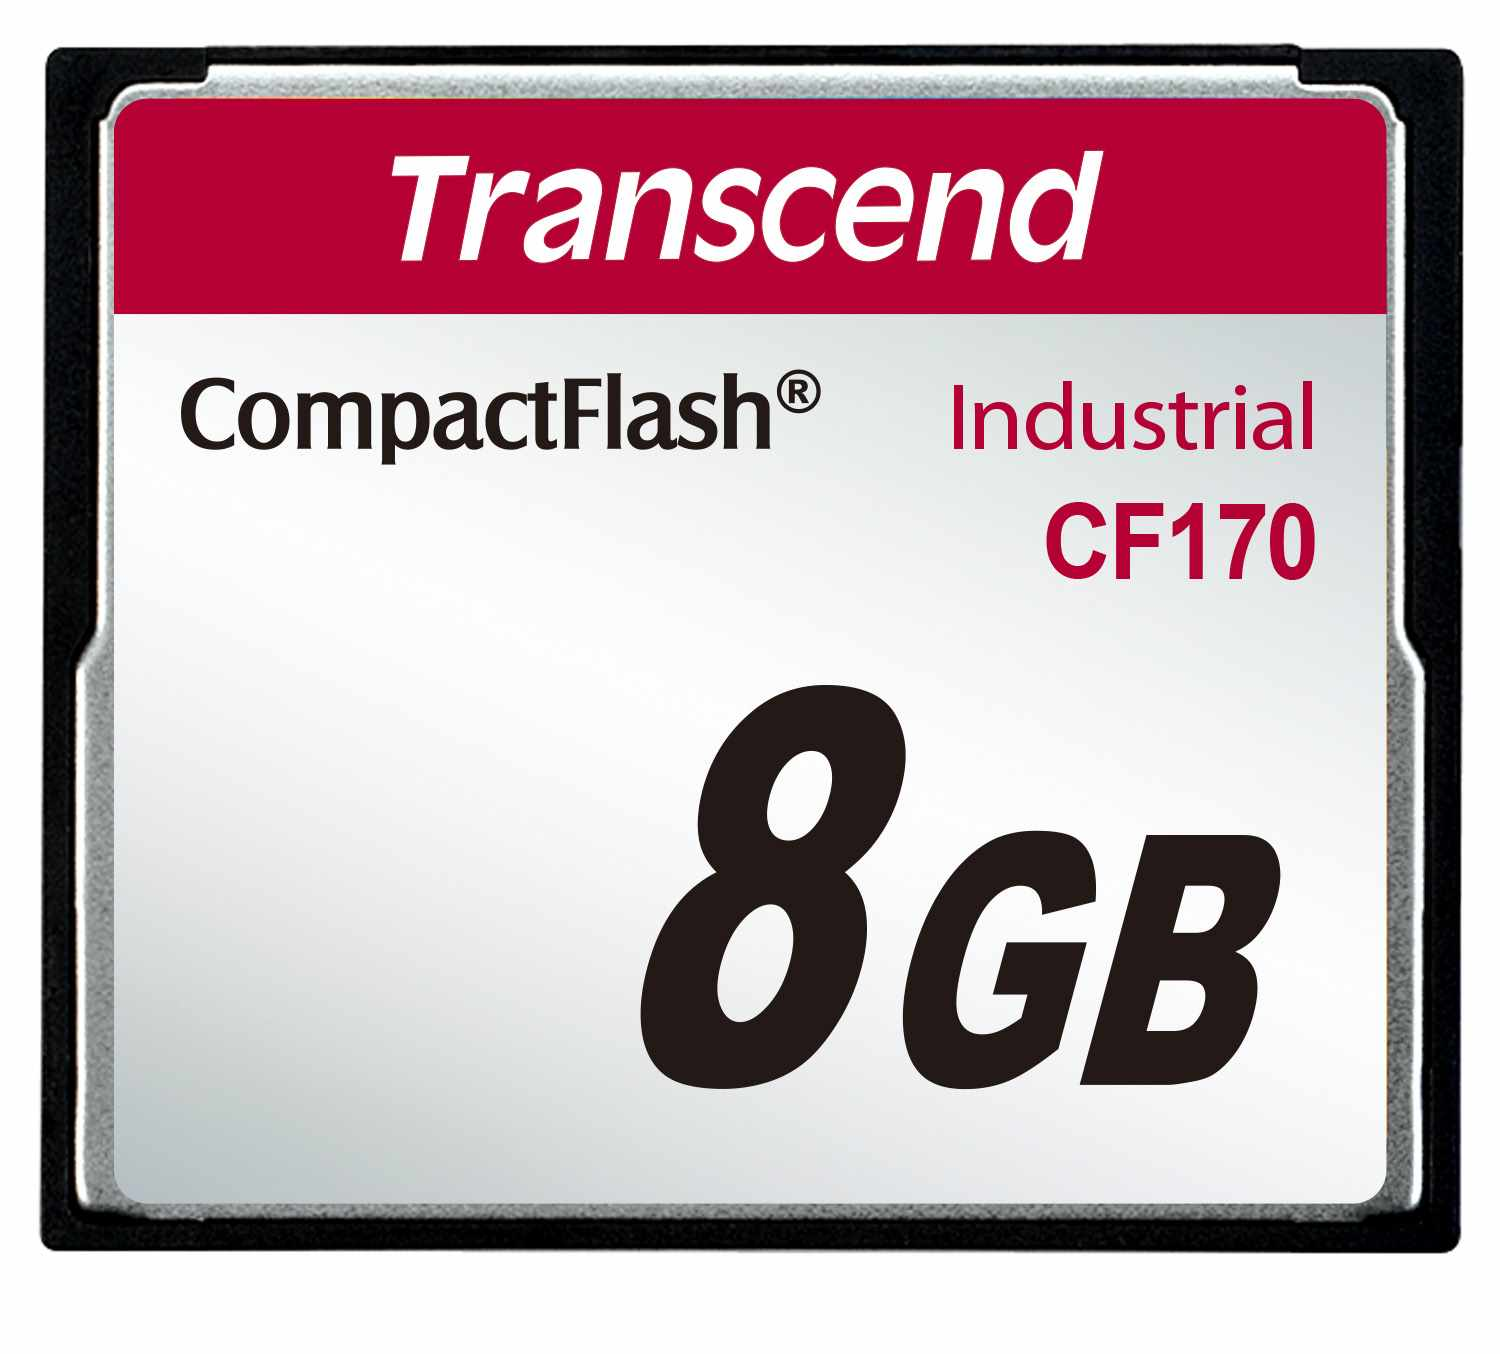 TRANSCEND Industrial Compact Flash Card CF170, 8GB, MLC